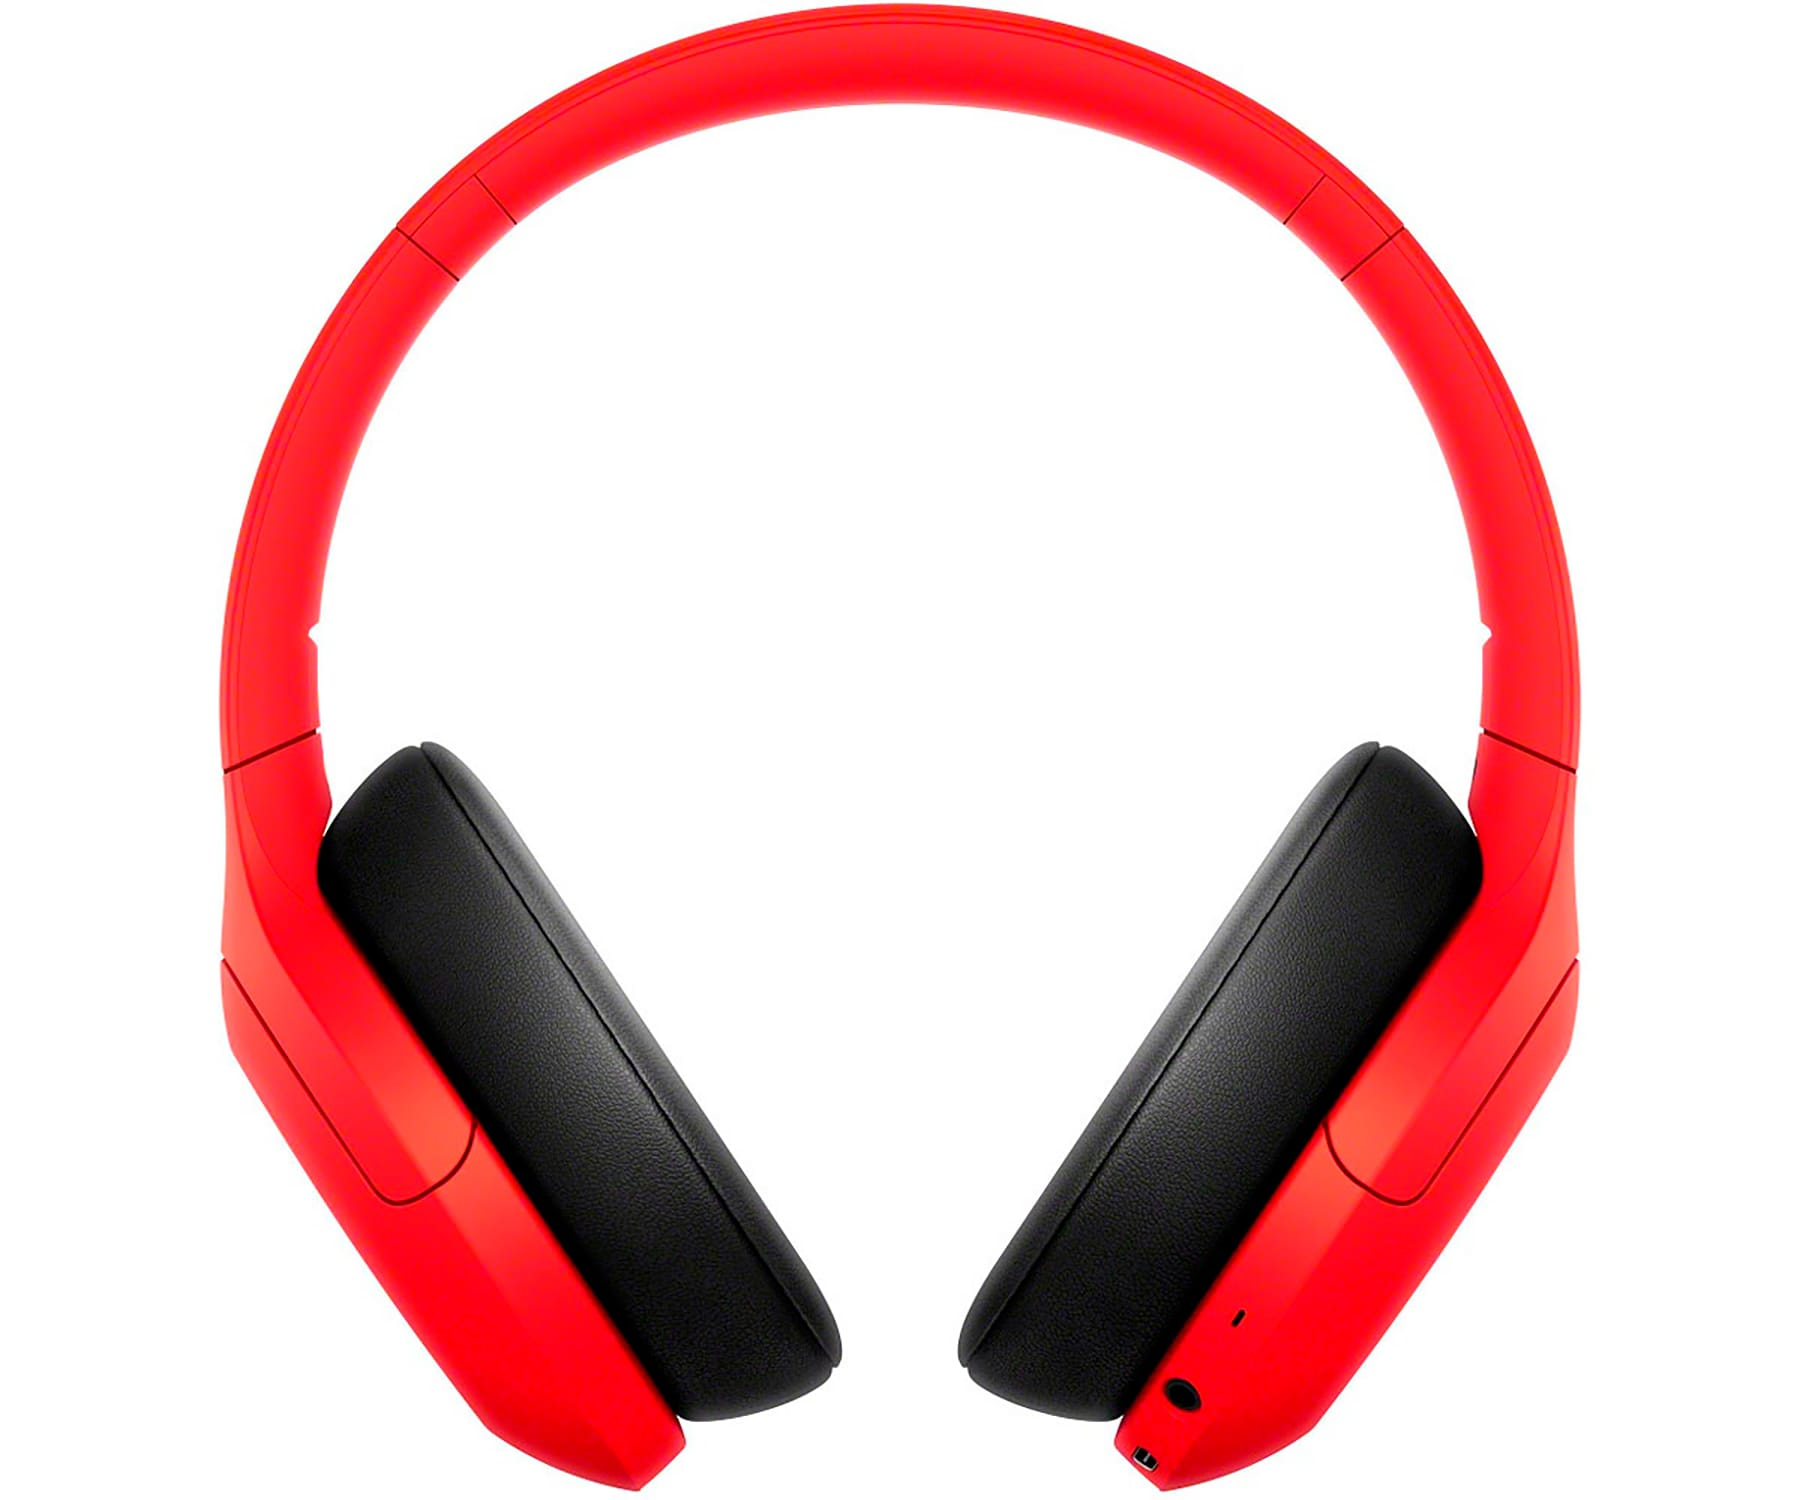 SONY WH-H910N ROJO AURICULARES BLUETOOTH NFC NOISE CANCELLING AUDIO DE ALTA RESOLUCIÓN